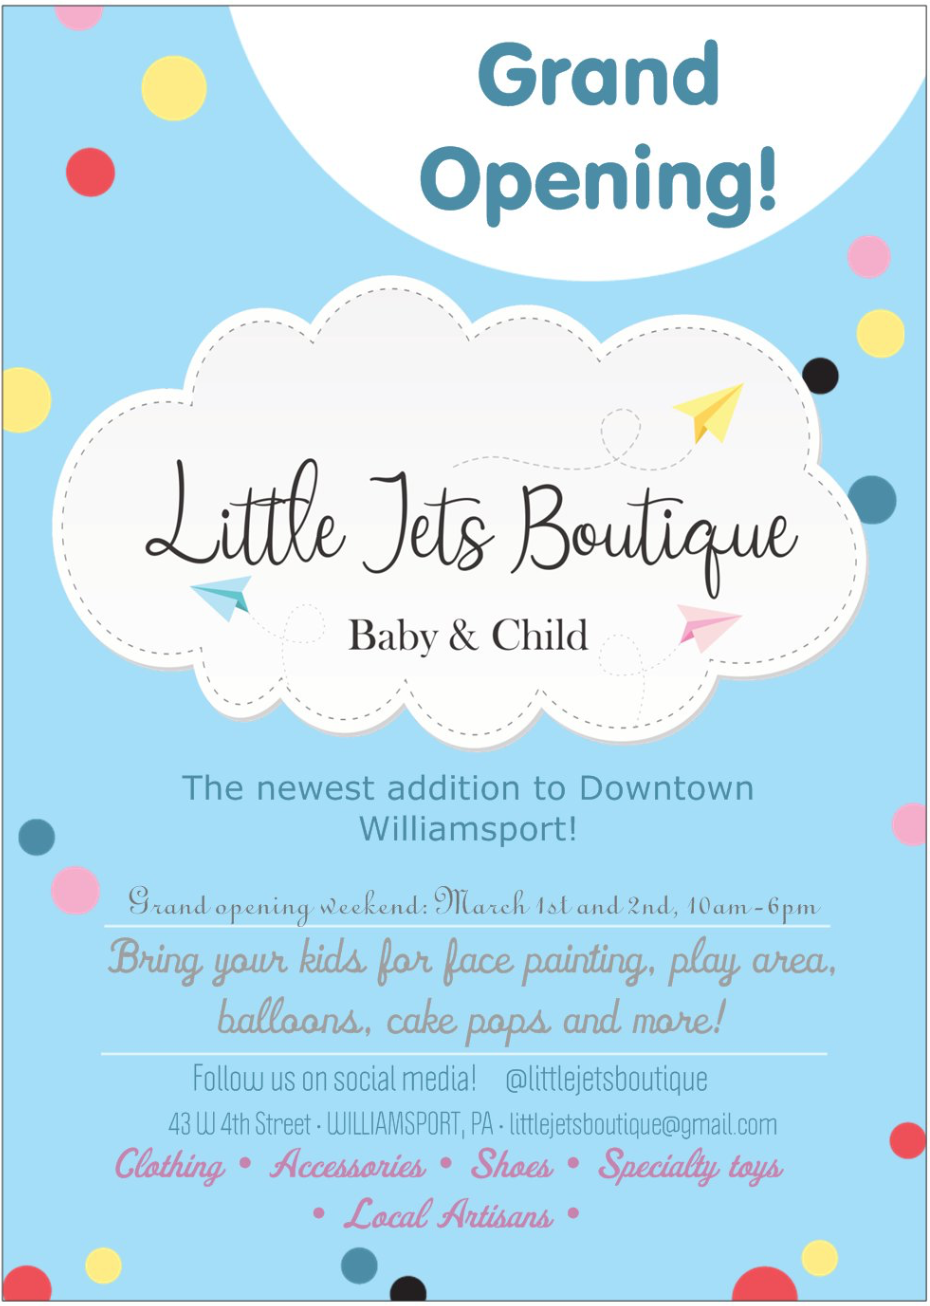 New Baby Child Boutique Coming To Williamsport Macaroni Kid Williamsport